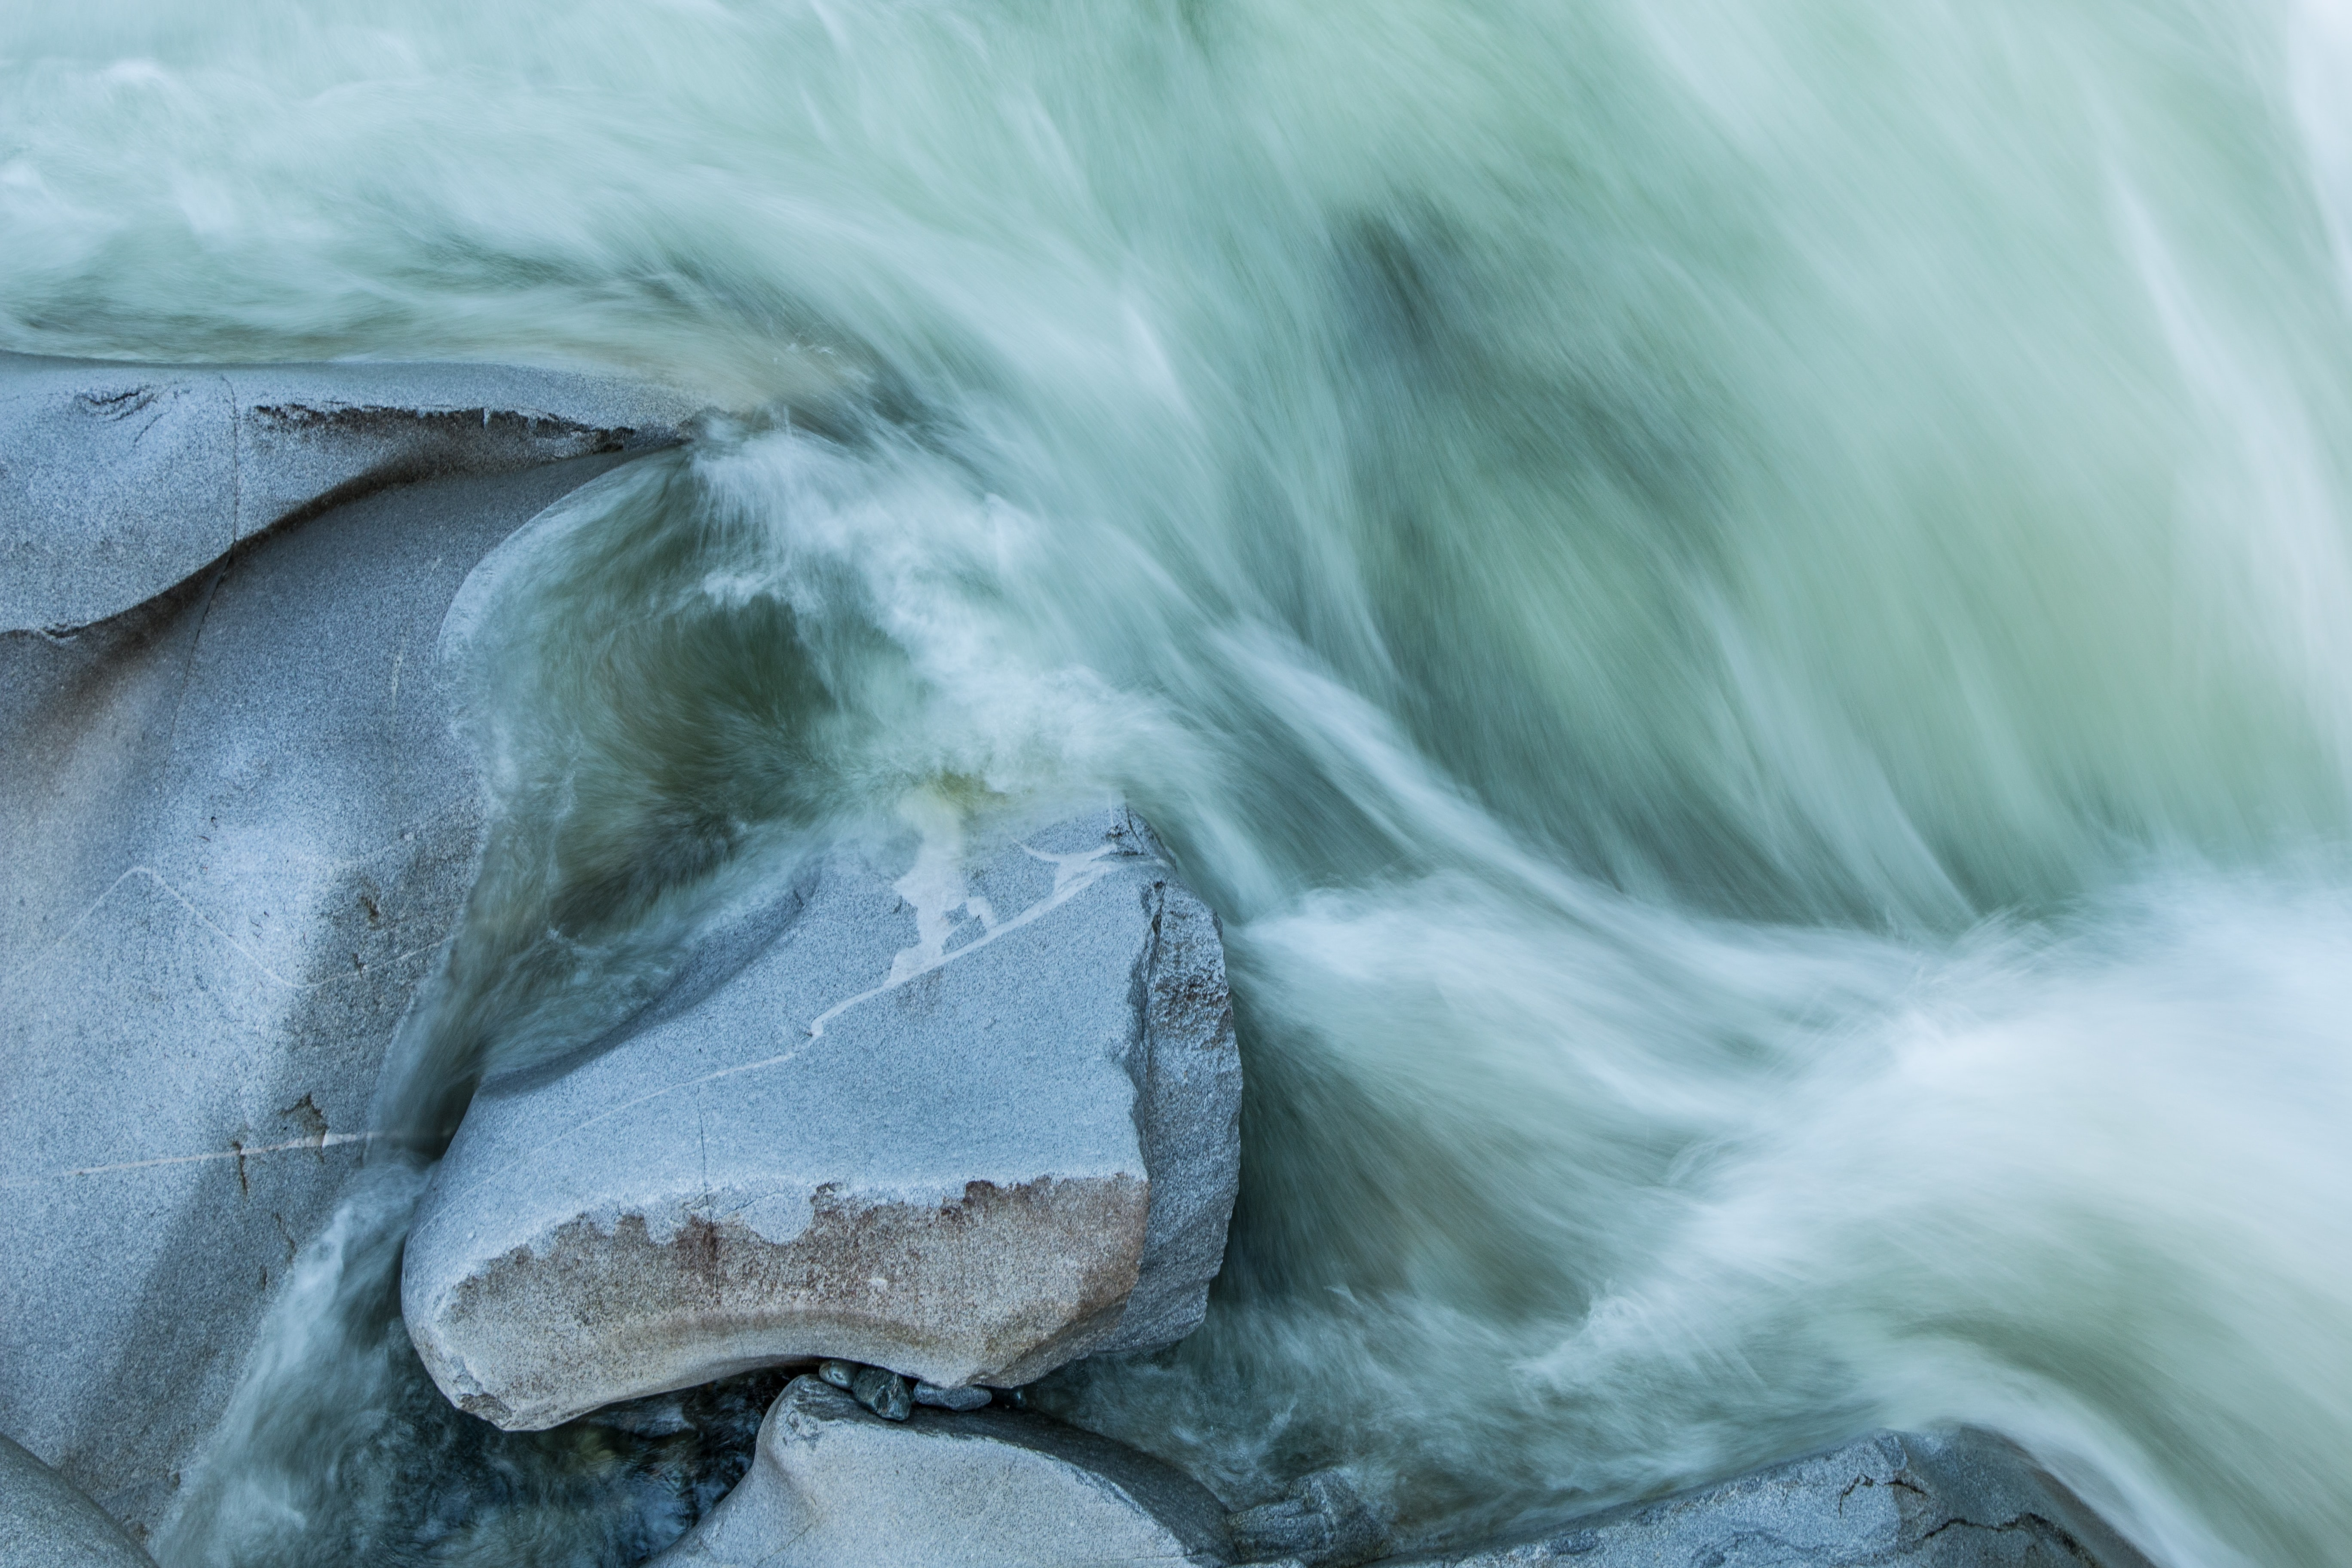 time-lapse photography of rock fragment and body of water